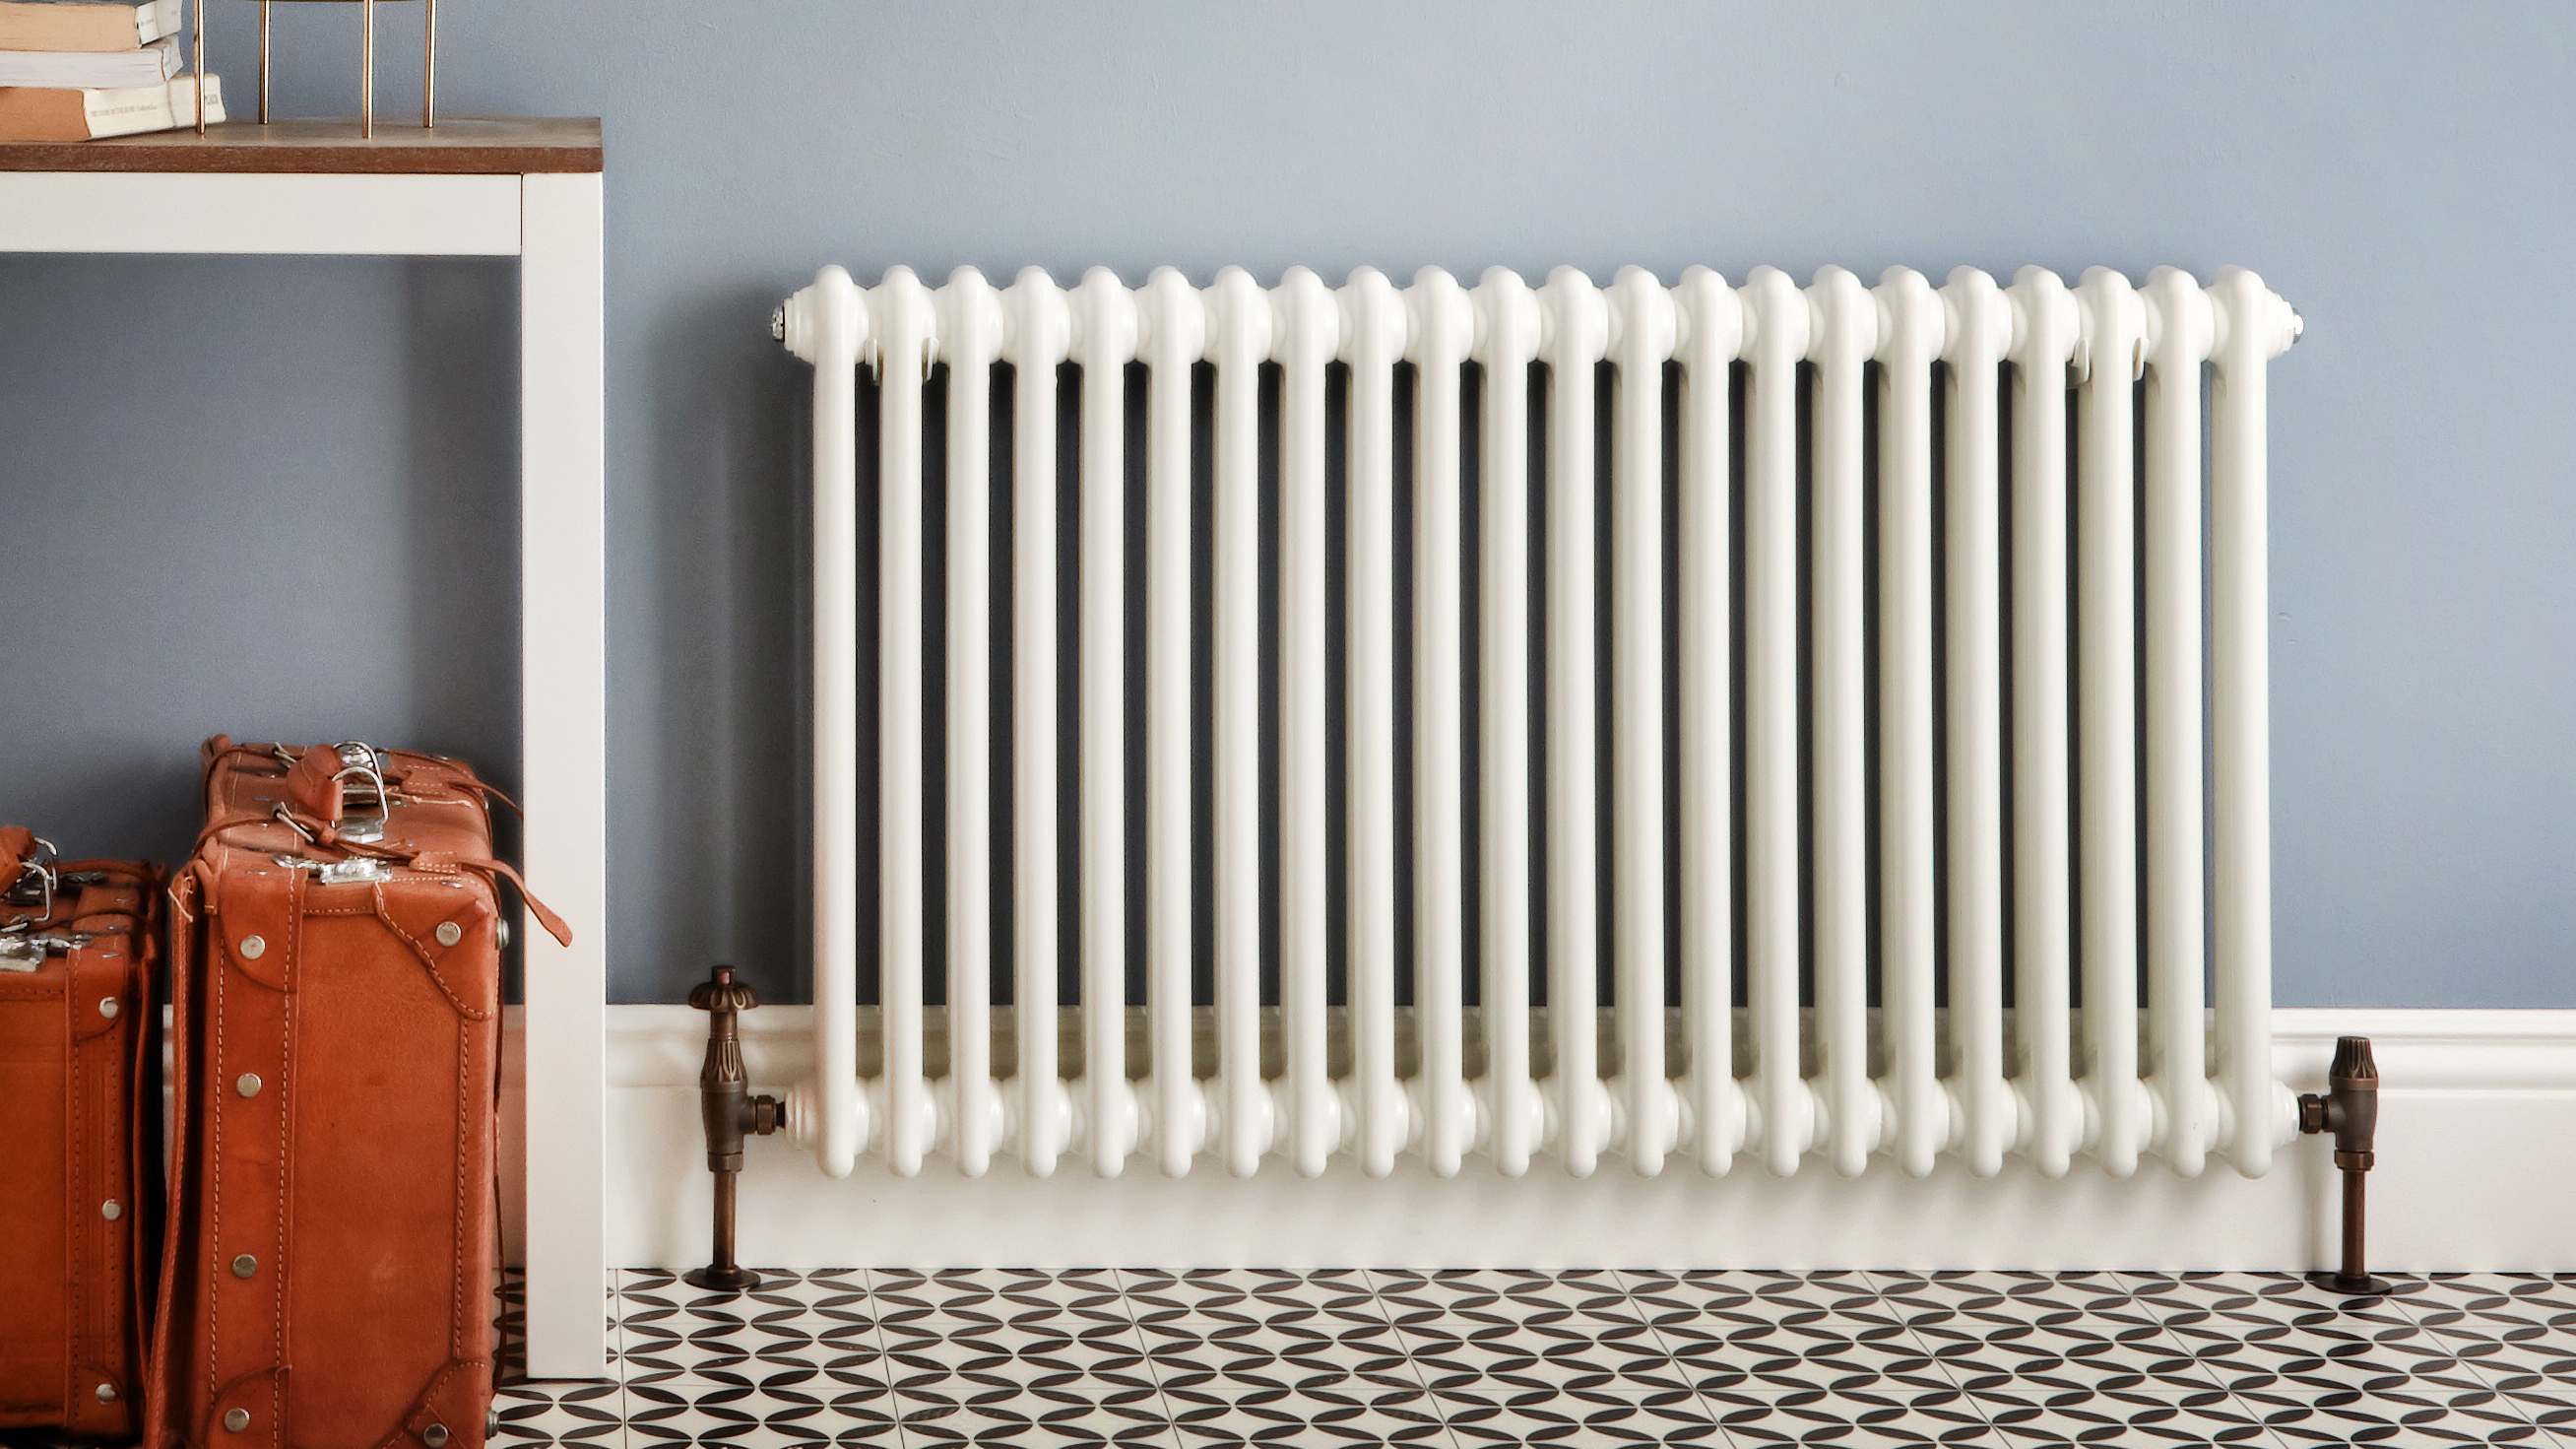 Best Radiators How To Choose The Nicest Design And Most Efficient Model To Heat Your Home Real Homes